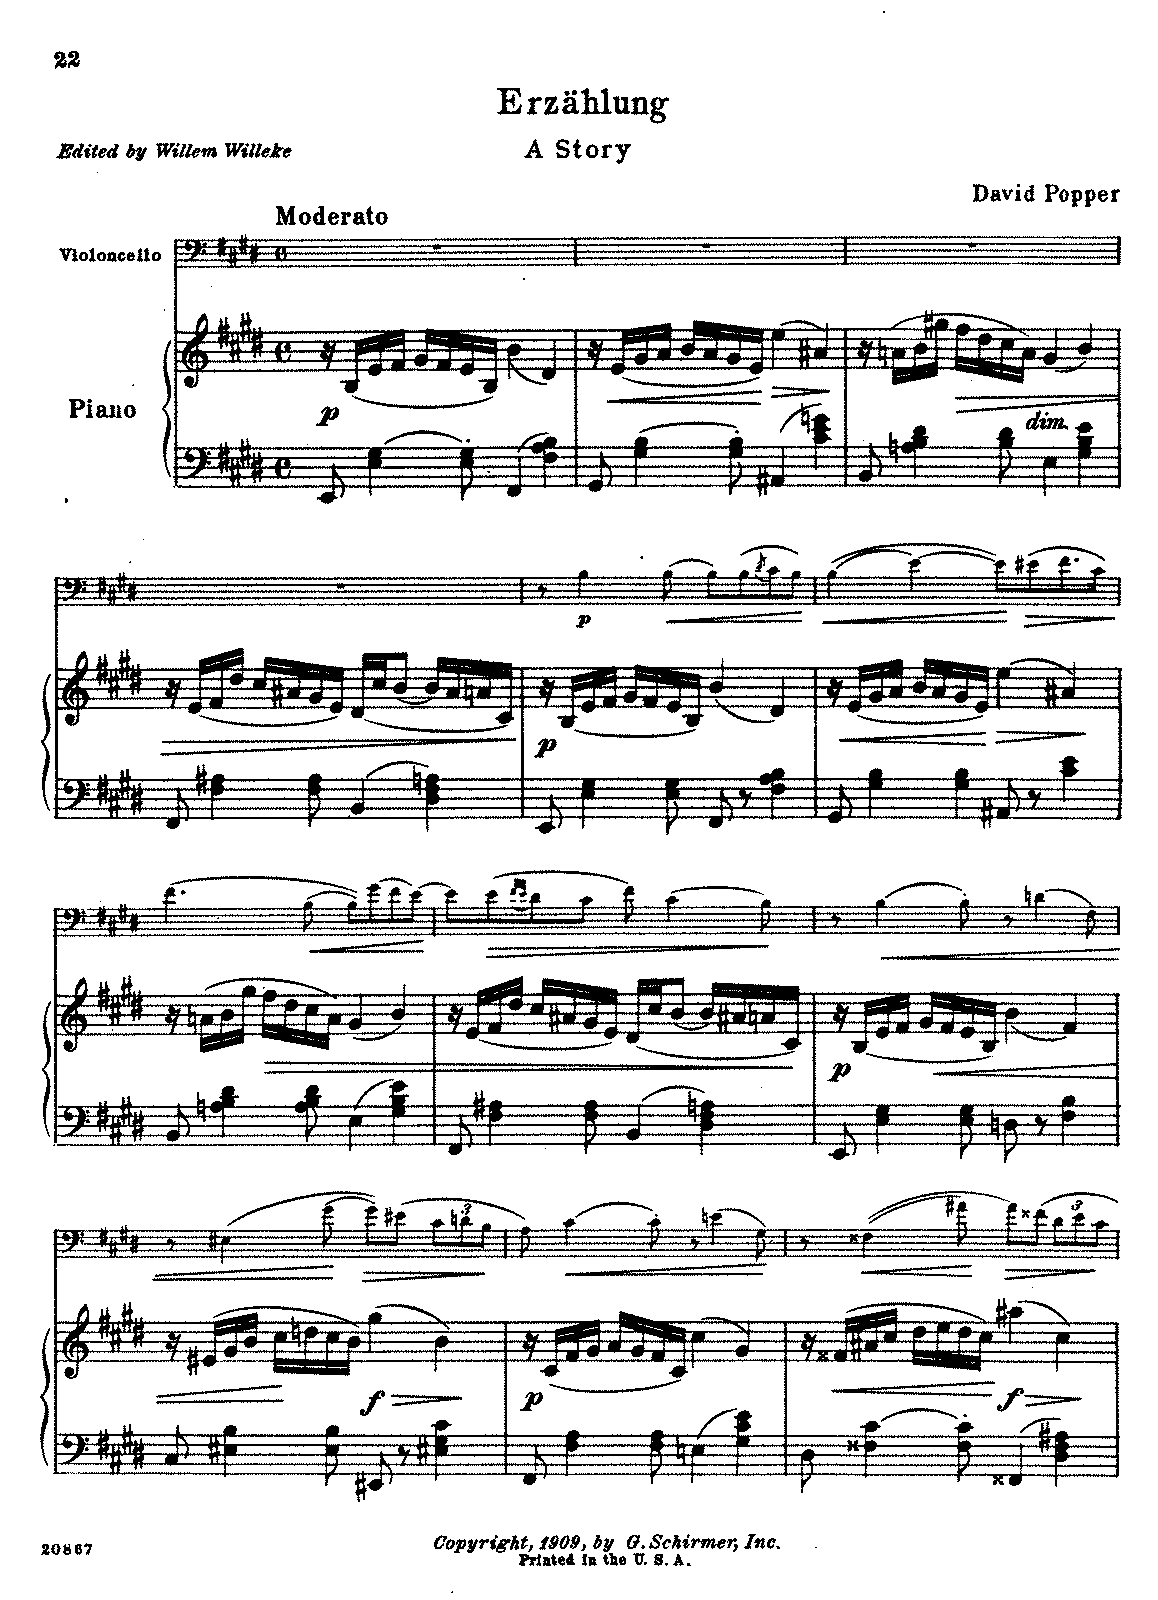 PMLP46465-Popper - Erzahlung - A Story Op3 No3 (Willeke) for cello and piano.pdf